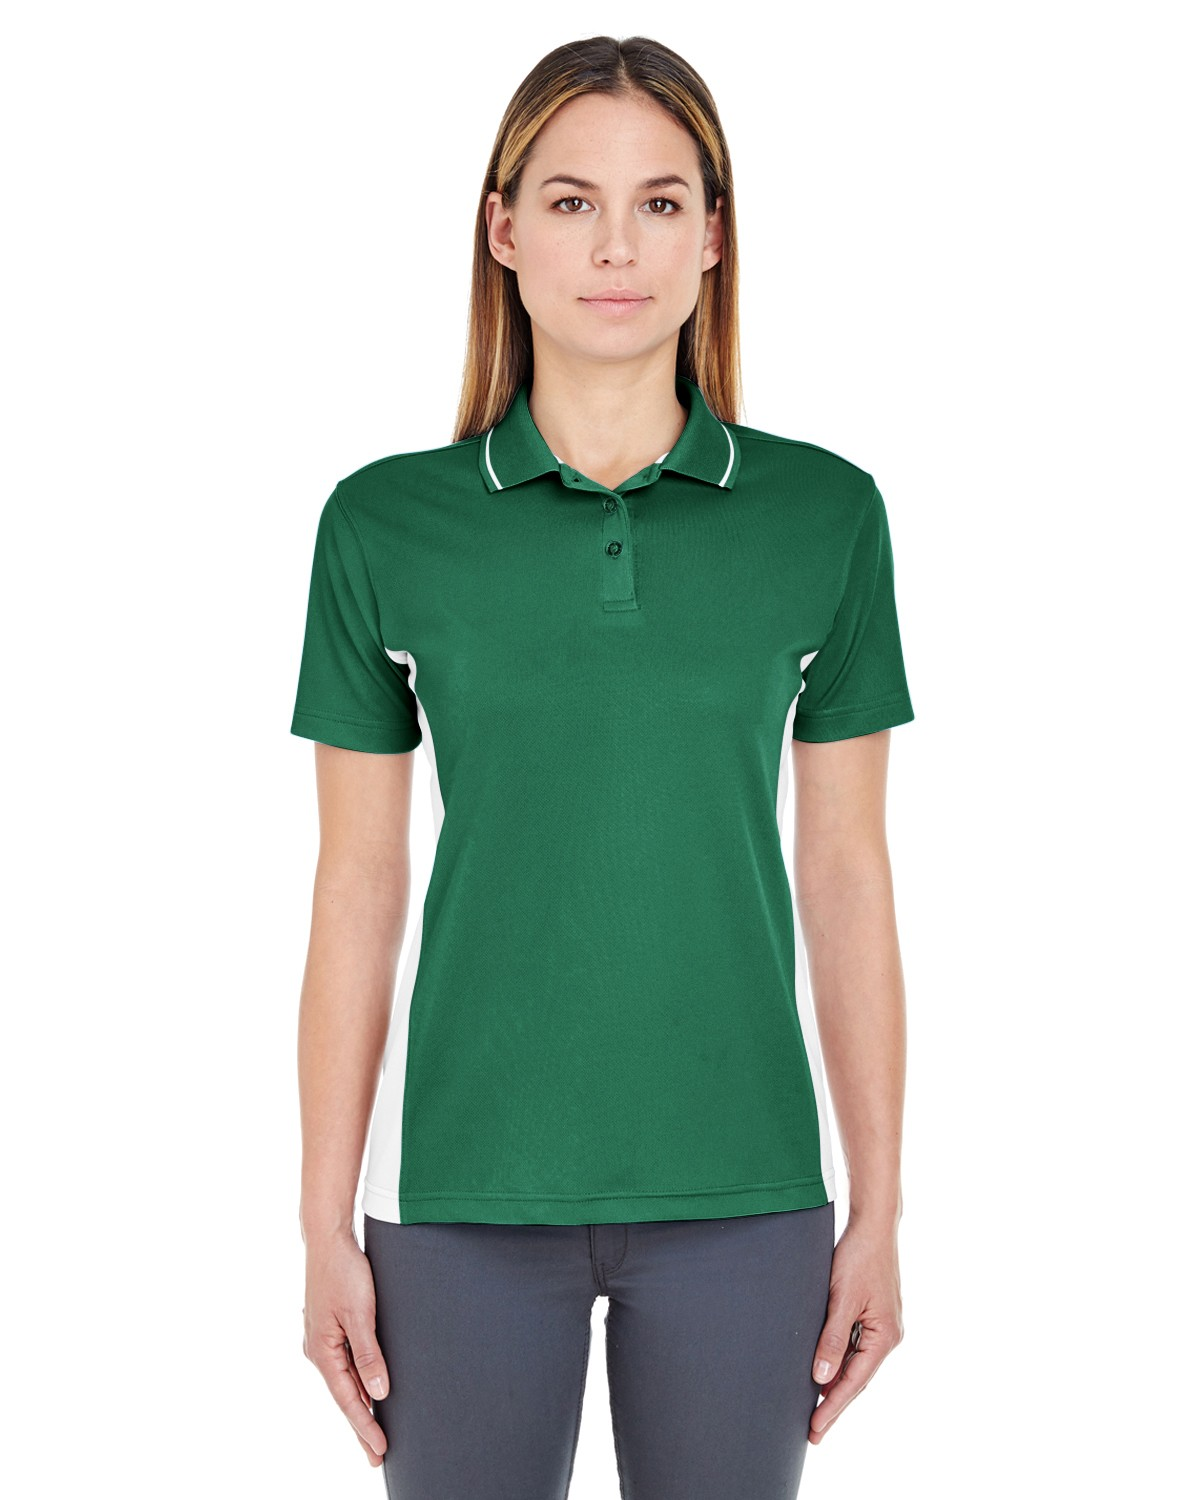 8406L UltraClub FOREST GRN/WHT